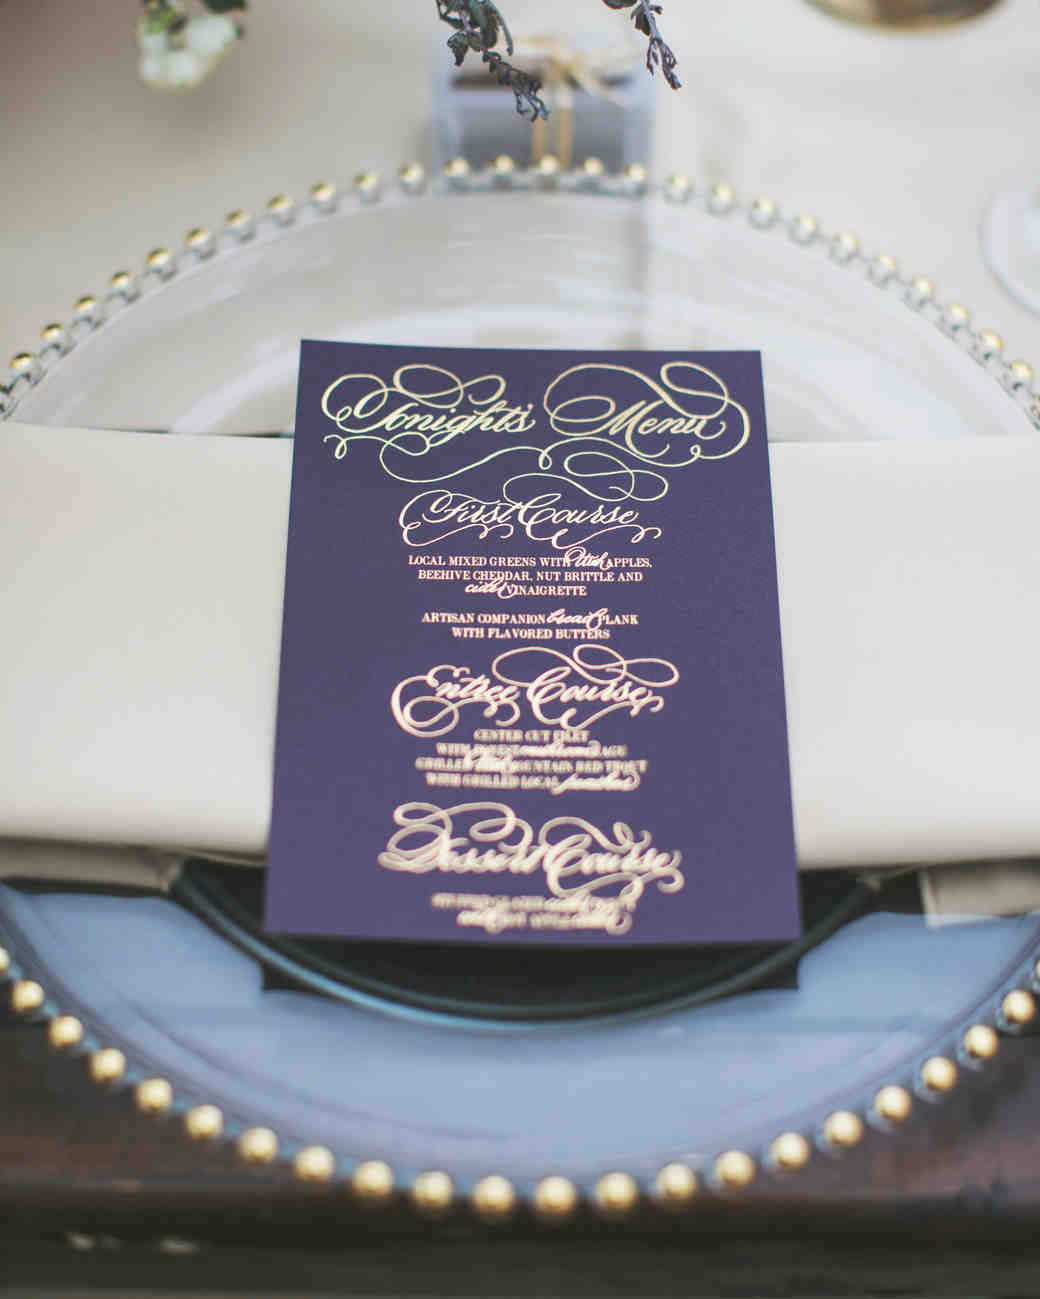 sara-matt-wedding-menu-1461-s111990-0715.jpg